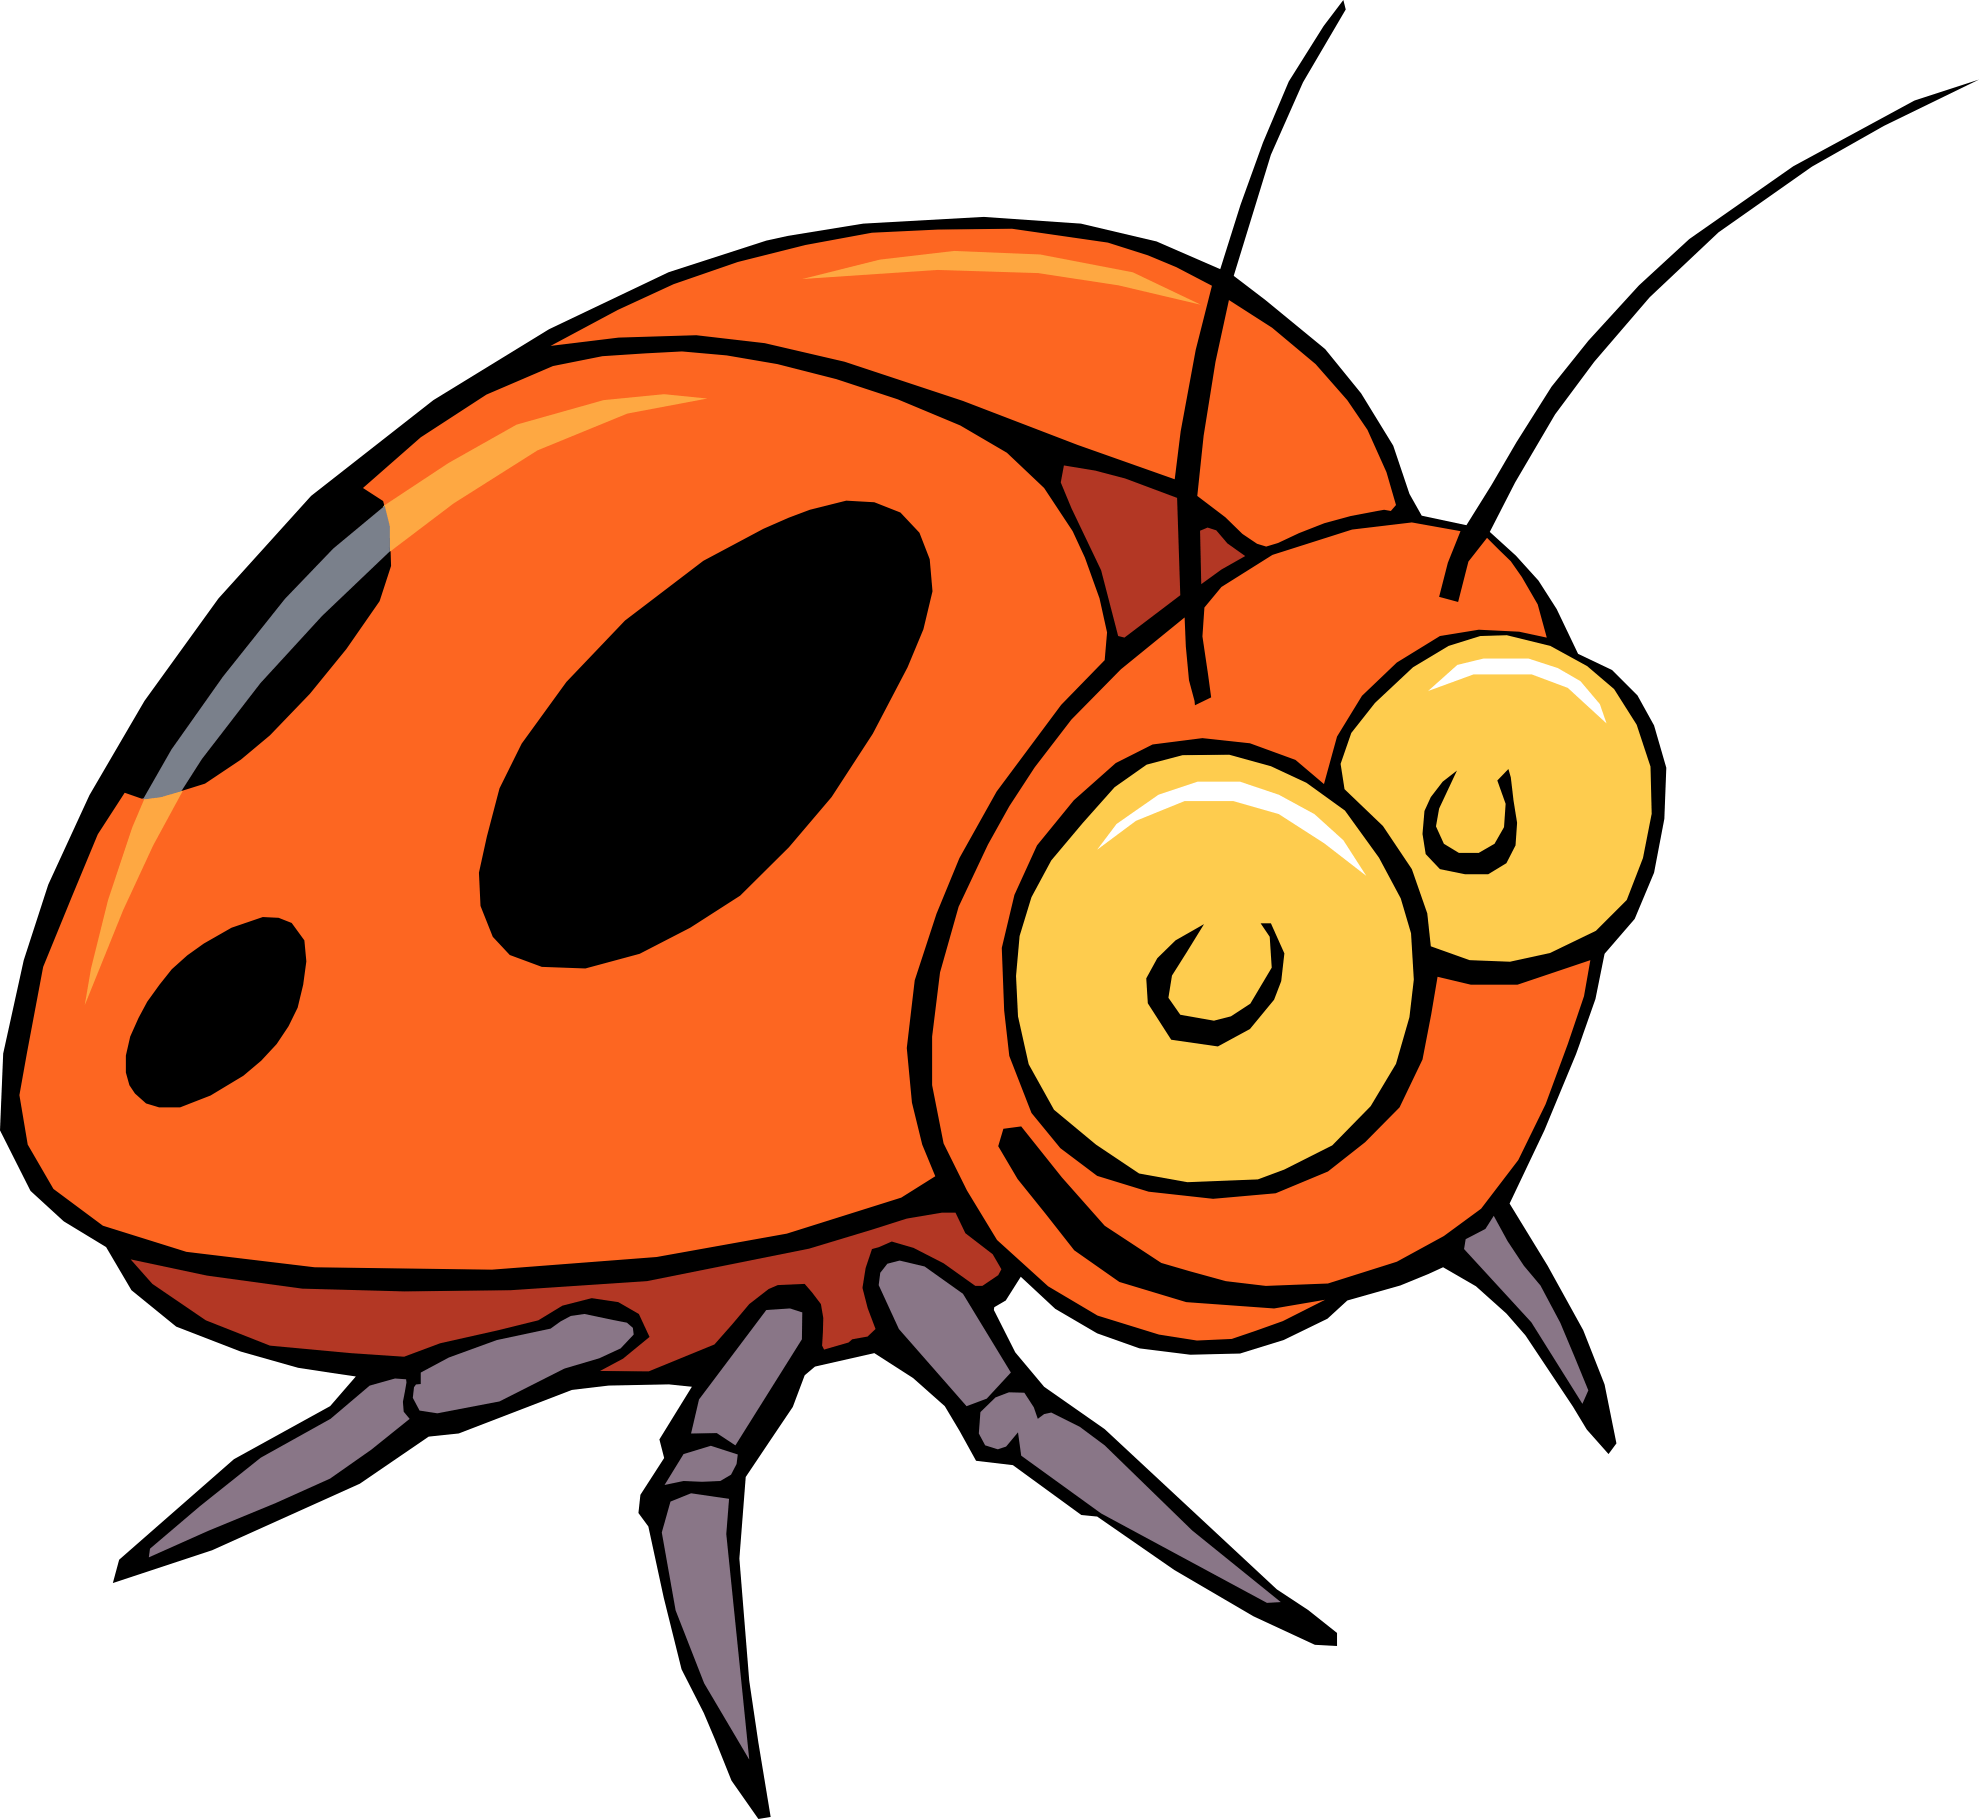 hight resolution of bug clipart image 30441